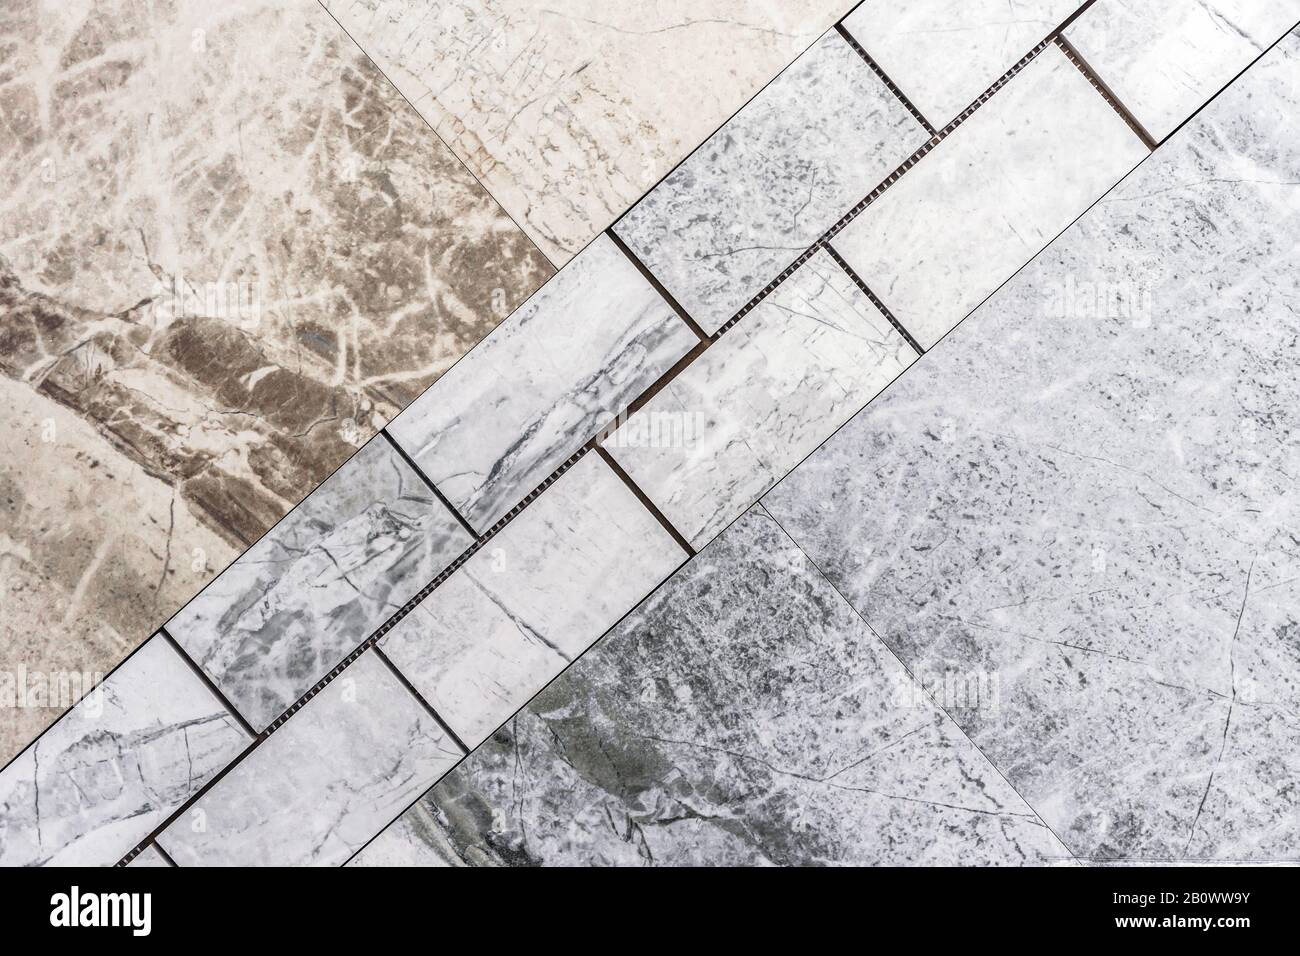 Marble Tiles In Gray And Beige Natural Marble Stock Photo Alamy